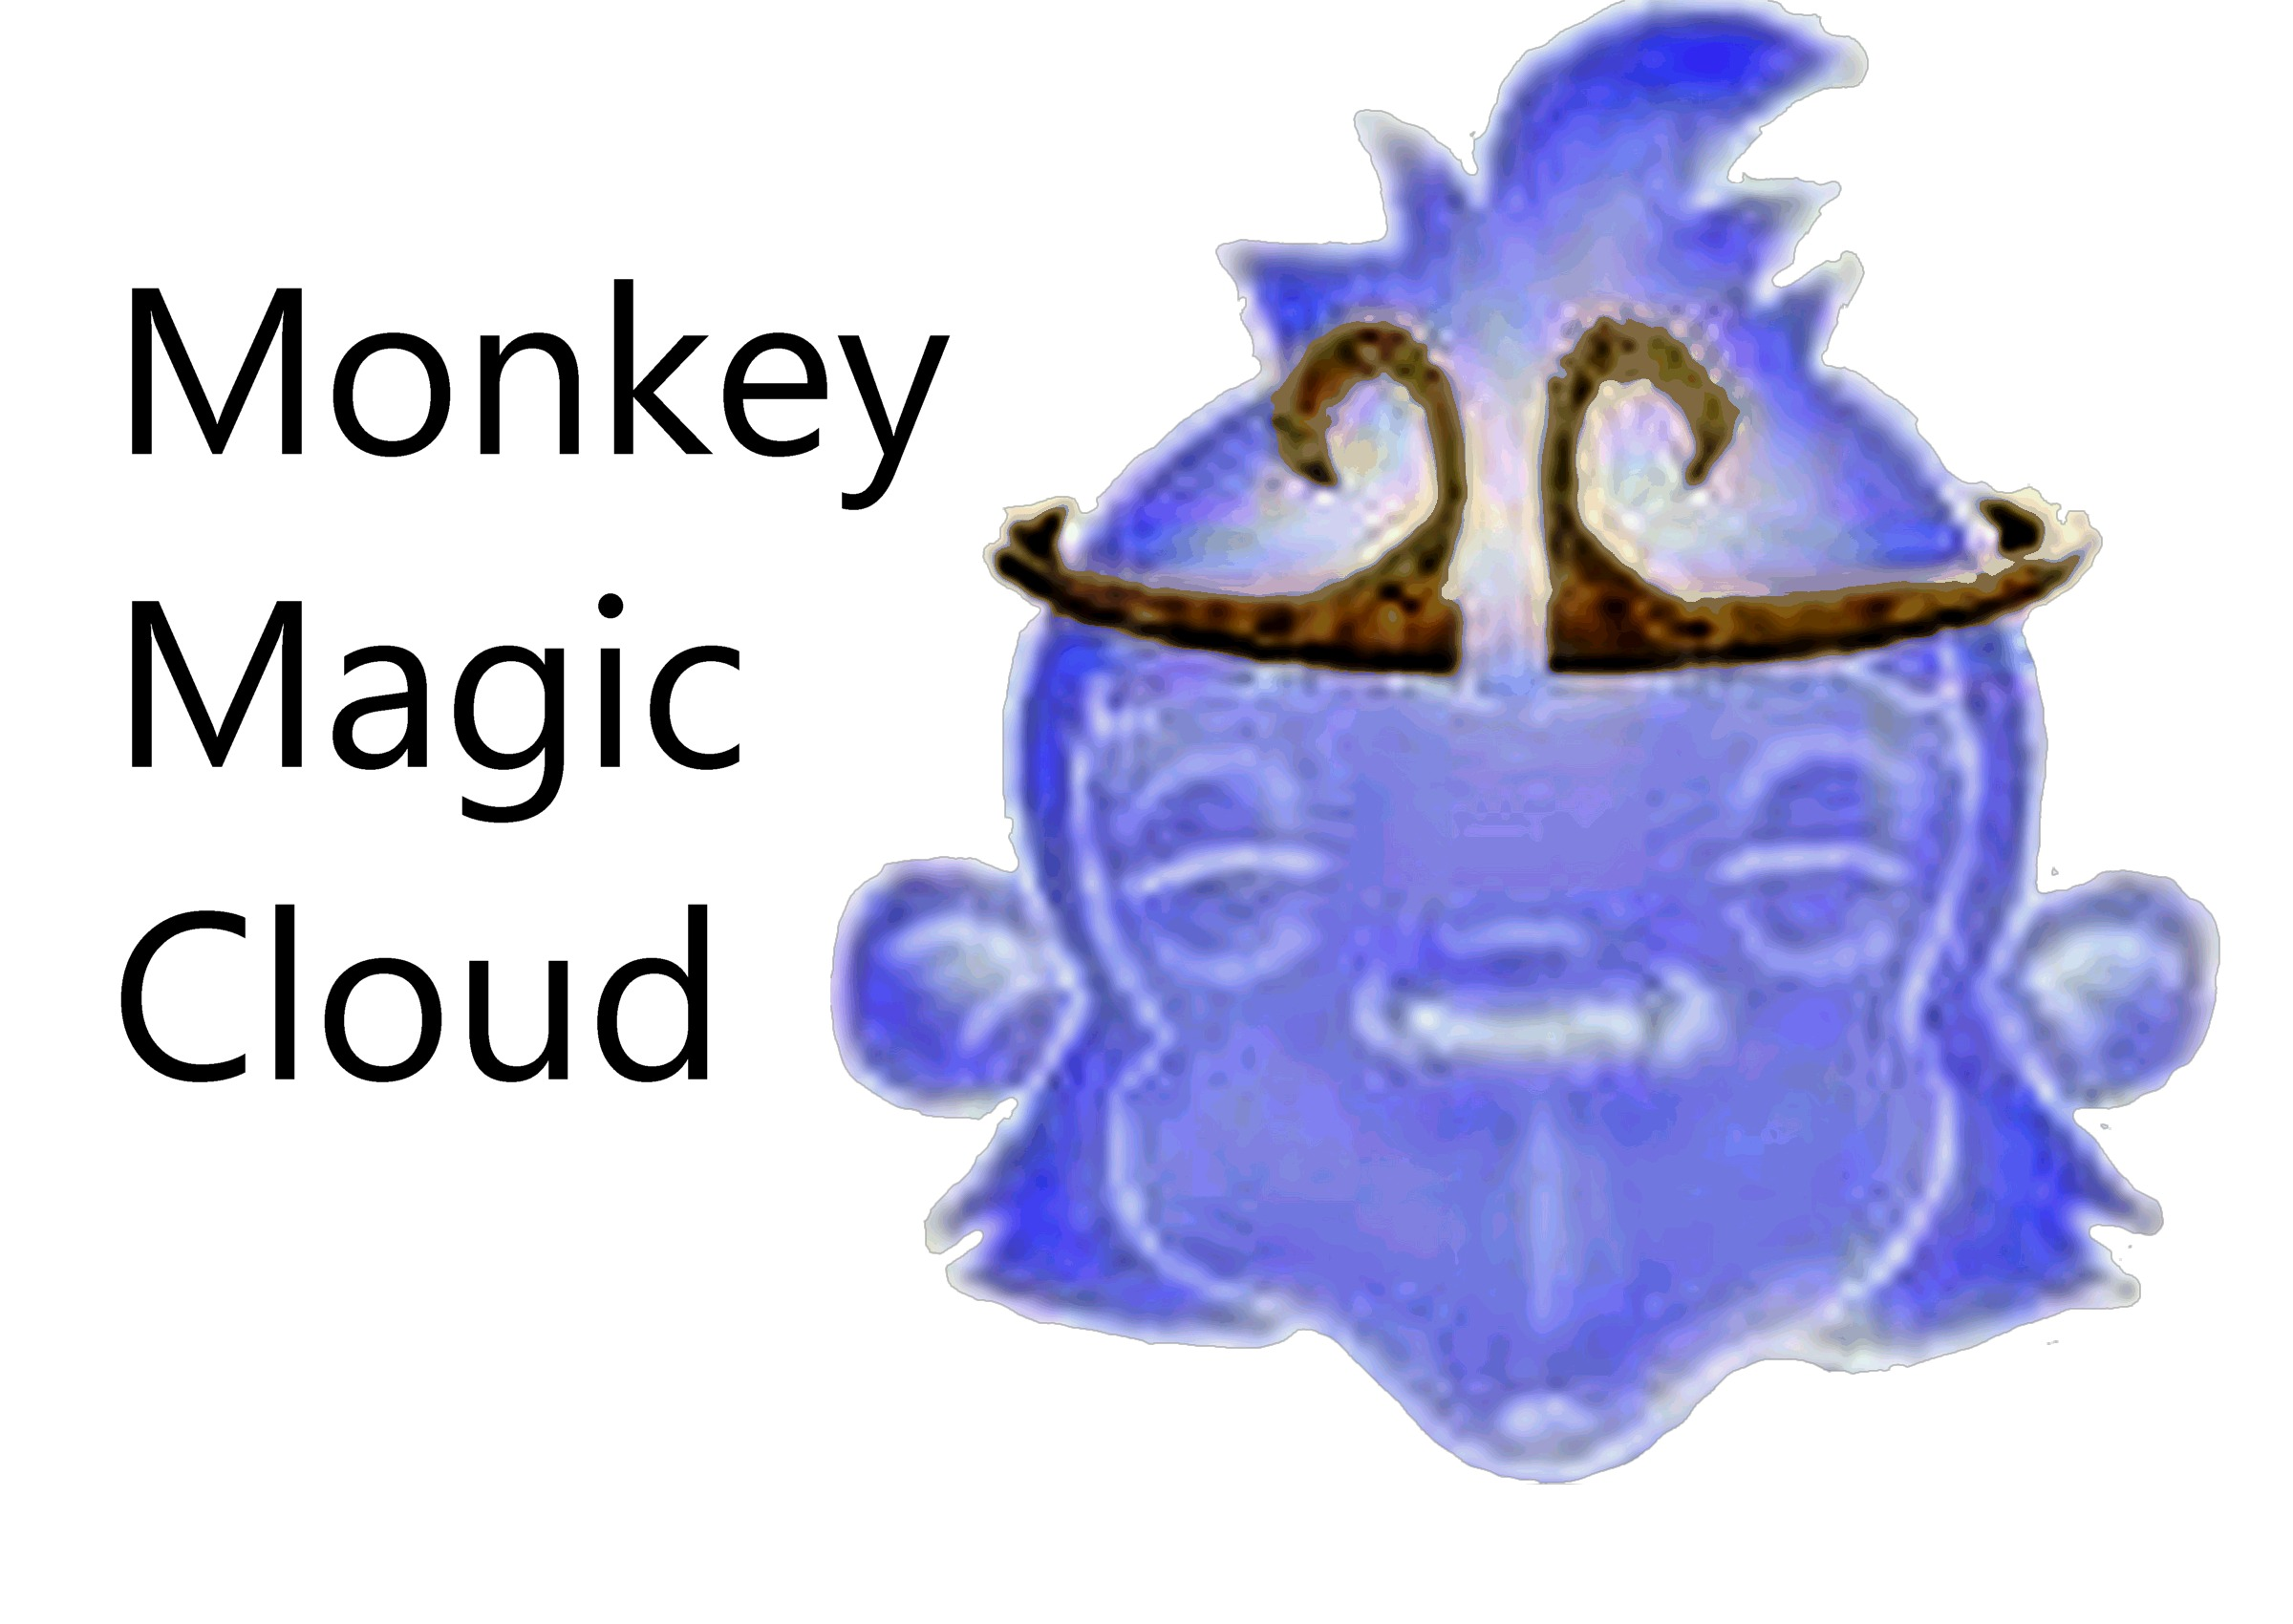 Monkey Magic Cloud - Hosting and Security